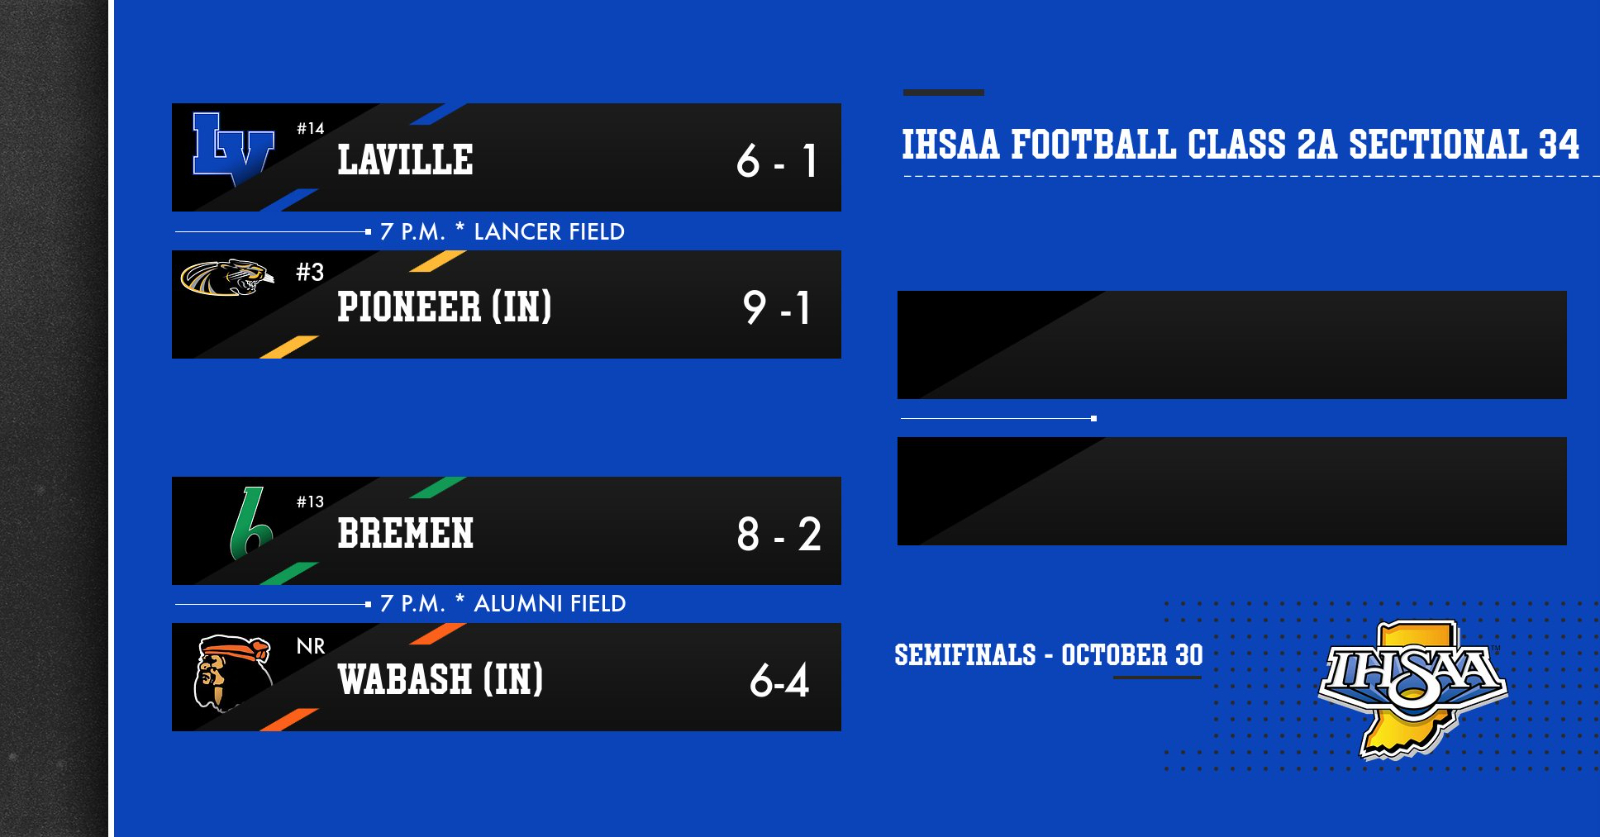 IHSAA Class 2A Sectional #34 Game Information